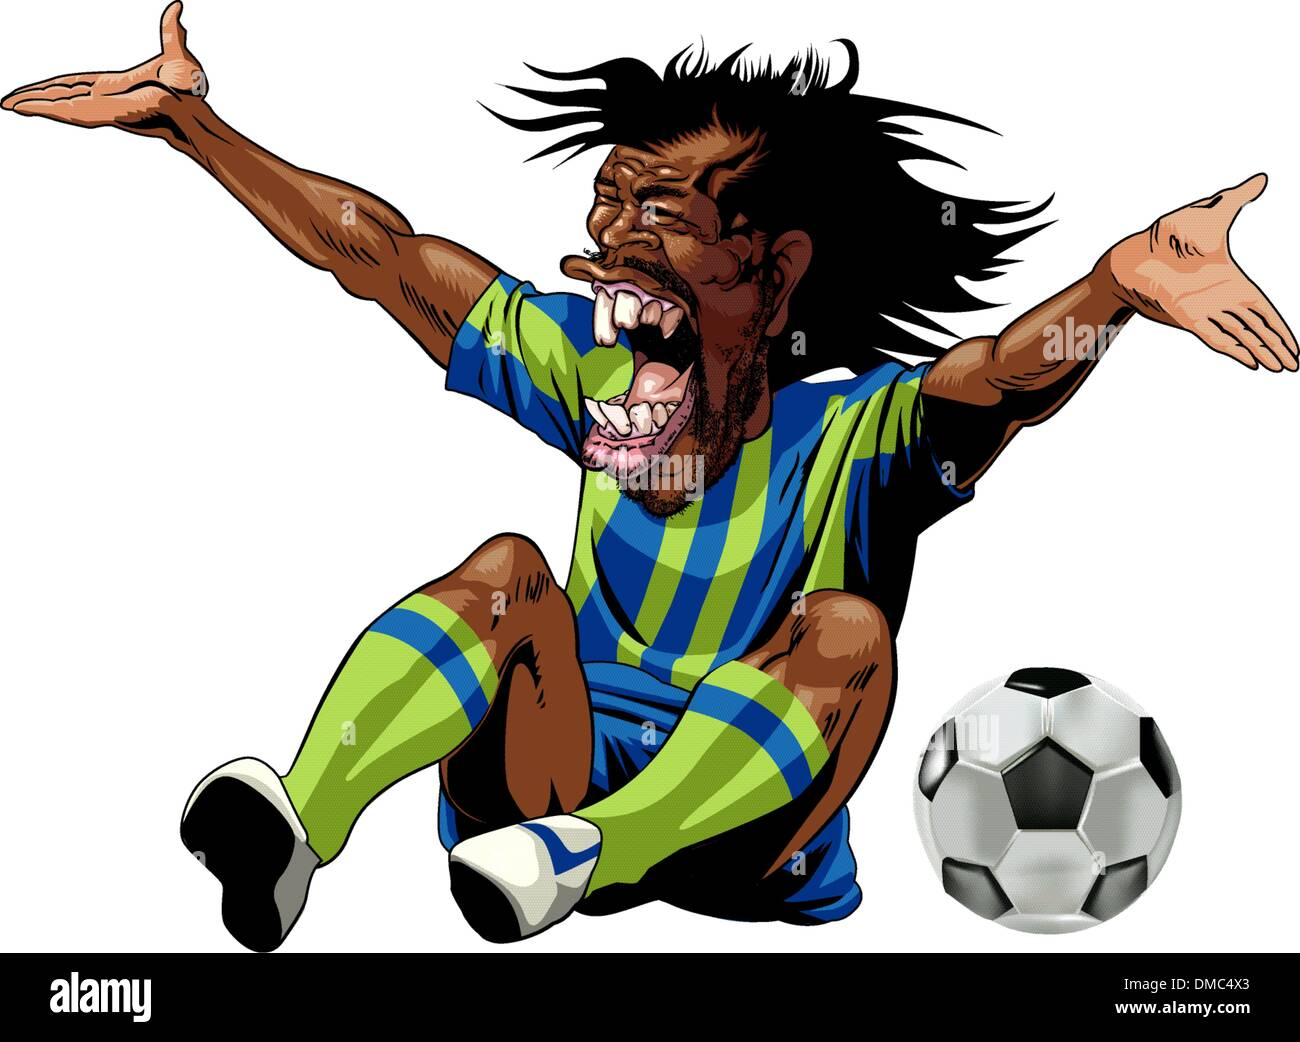 Angry Soccer Player After Foul - Stock Image